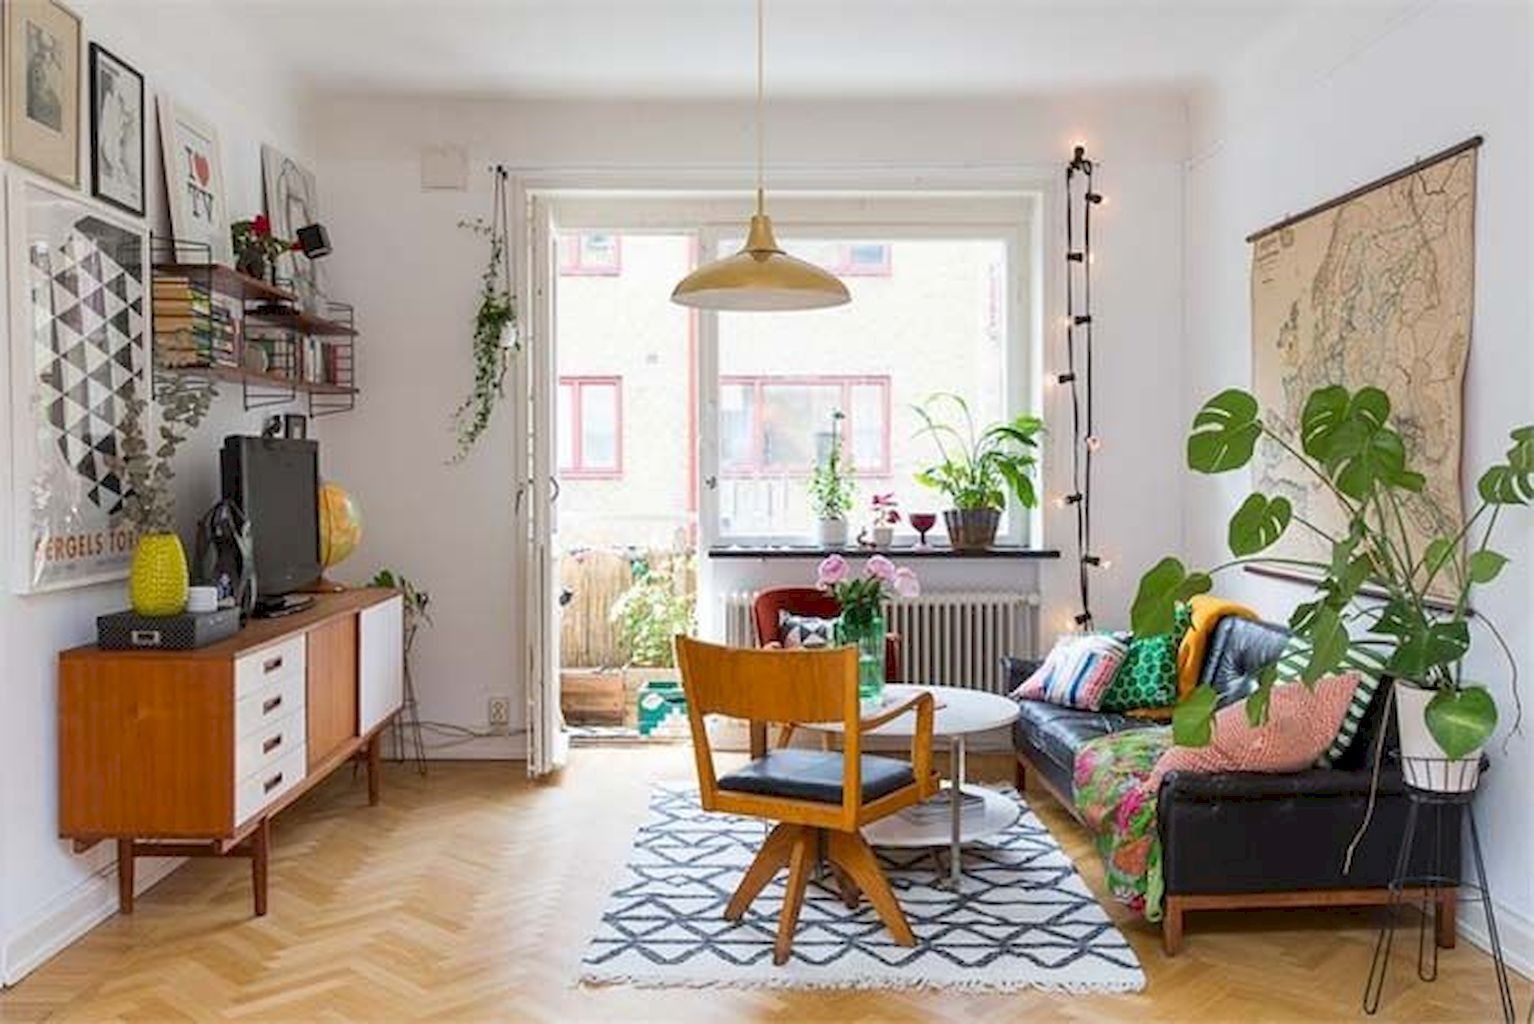 Inspiring Apartment Decorating Ideas On A Budget 12